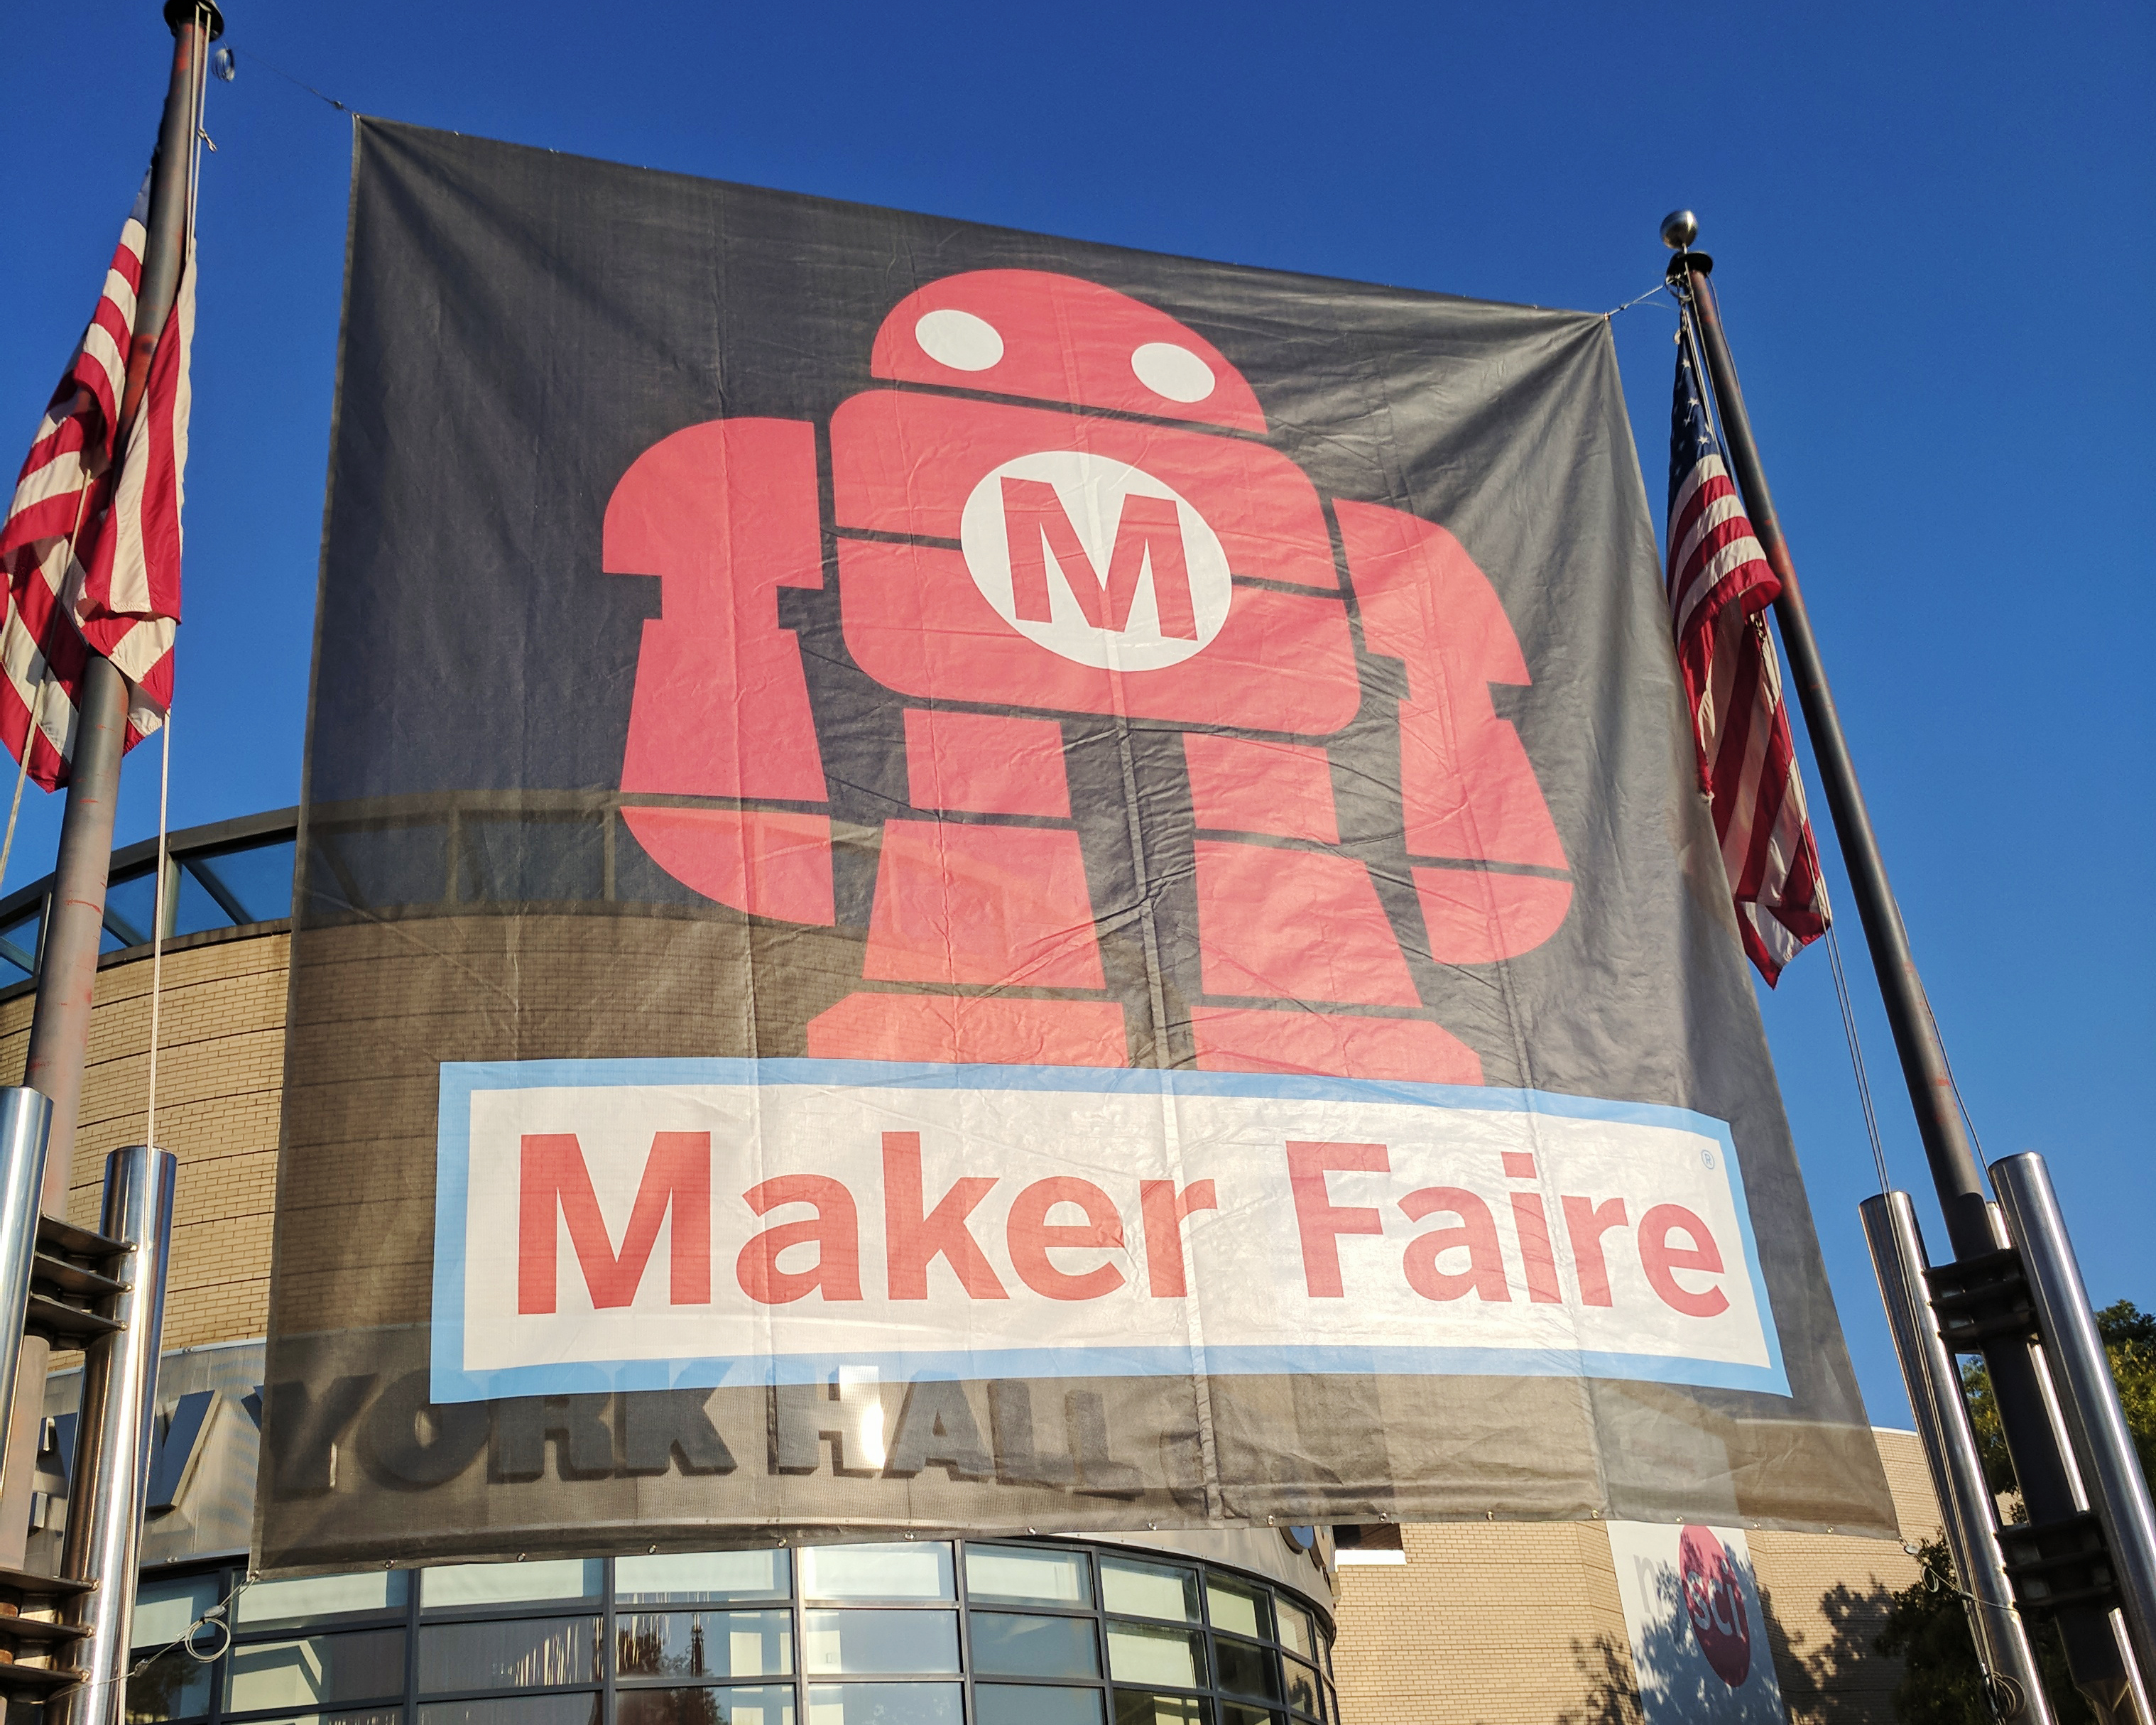 Do it yourself archives the gadgeteer this past weekend i attended the 8th annual world maker faire new york held at the new york hall of science started in 2006 by the publisher of make solutioingenieria Images